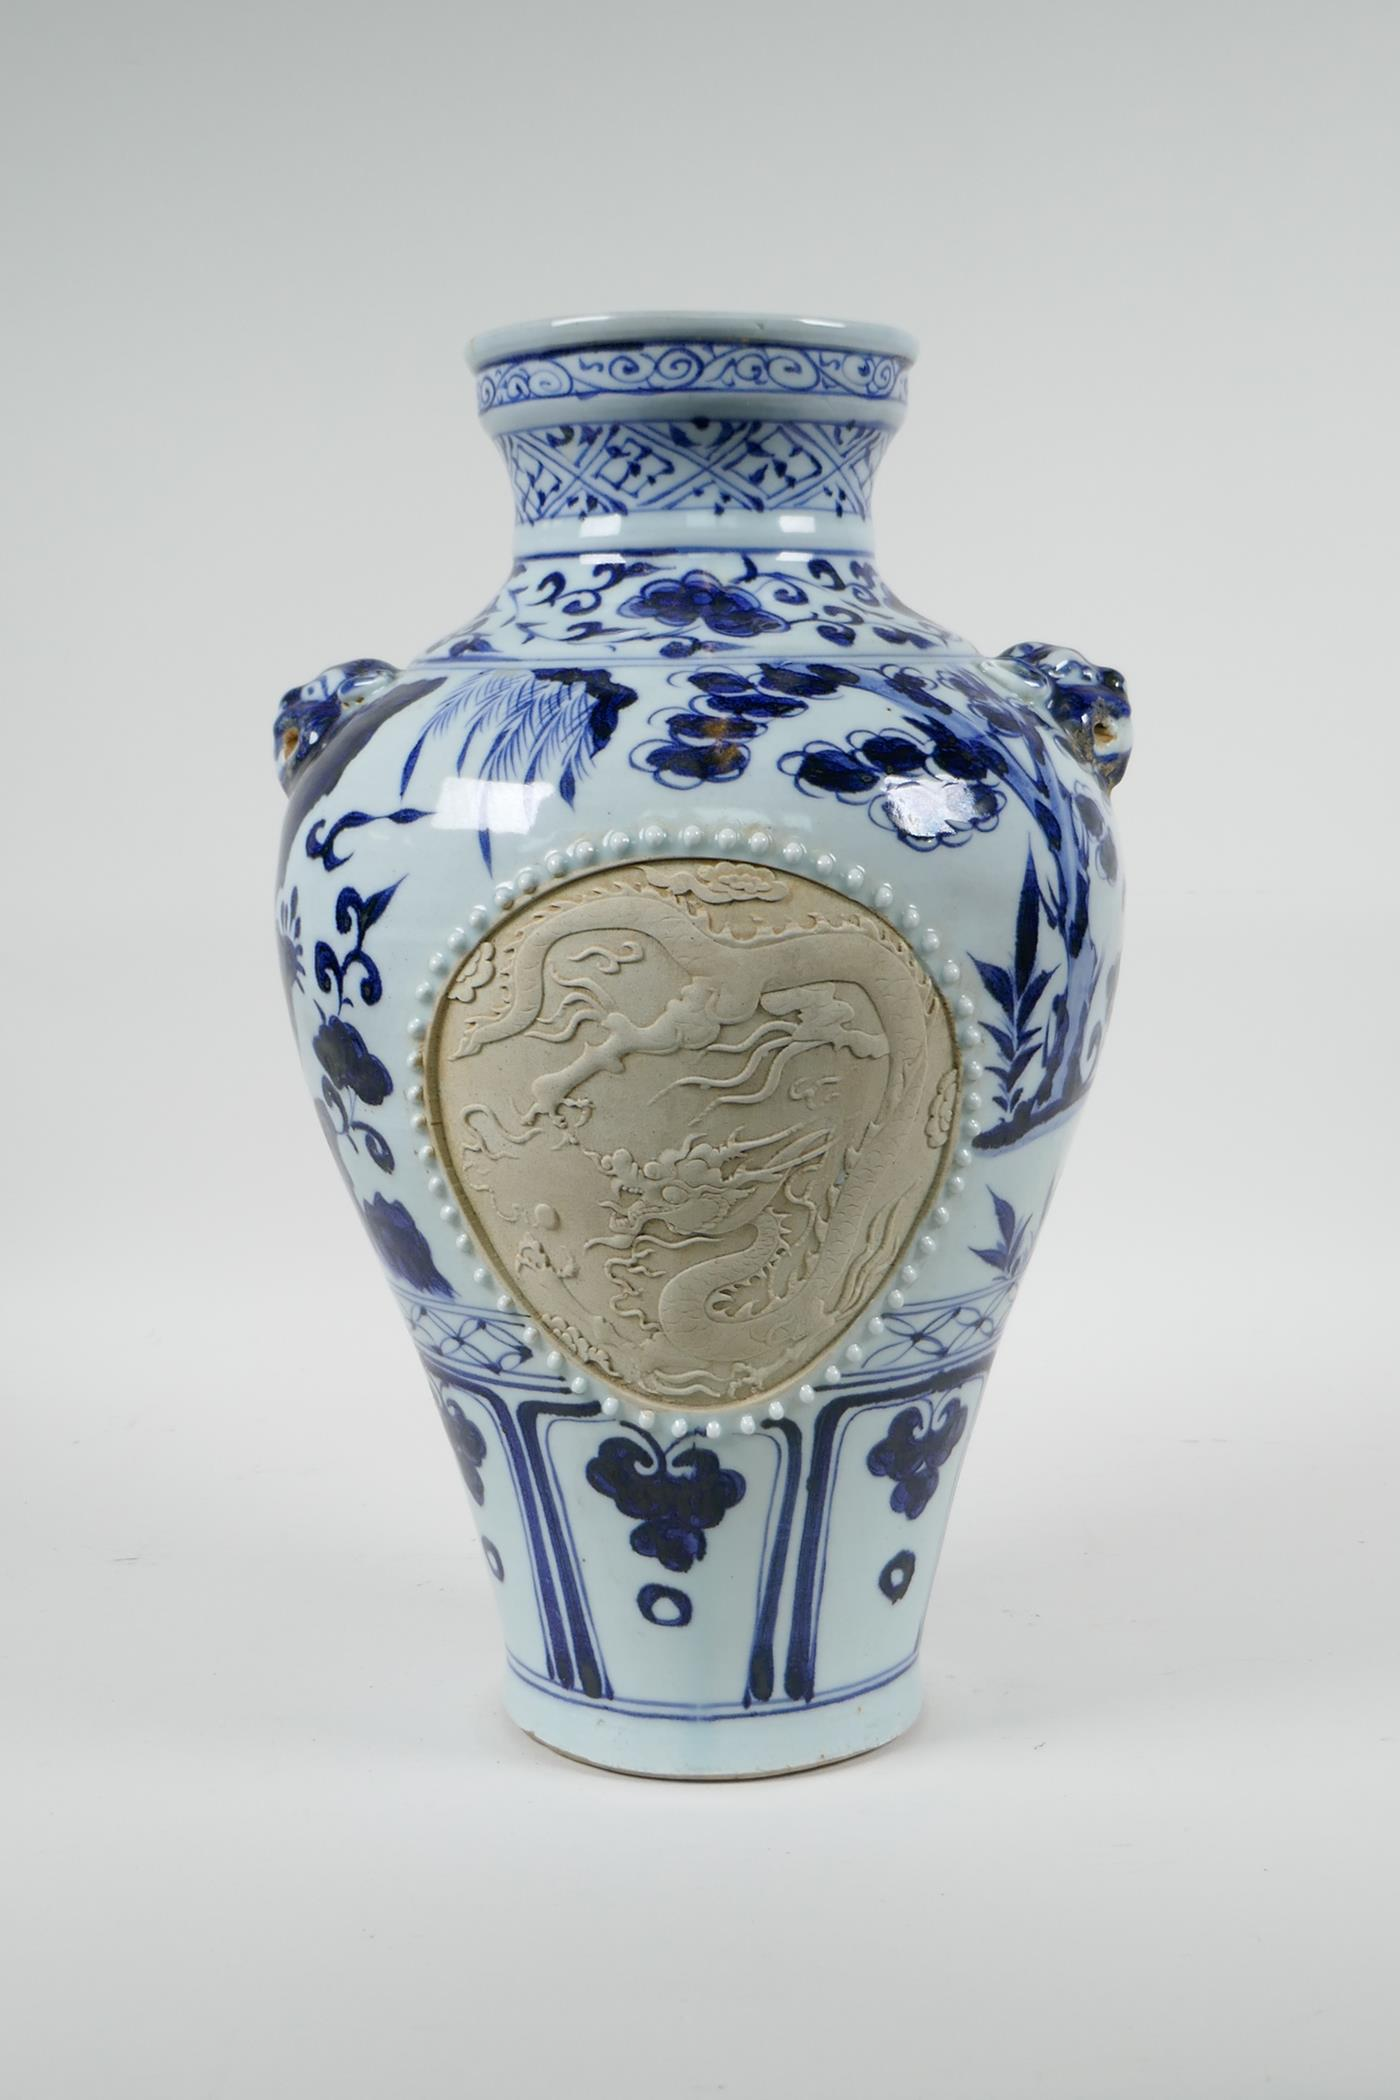 A Chinese blue and white porcelain vase with two lion mask handles, chased decorative panels - Image 4 of 8